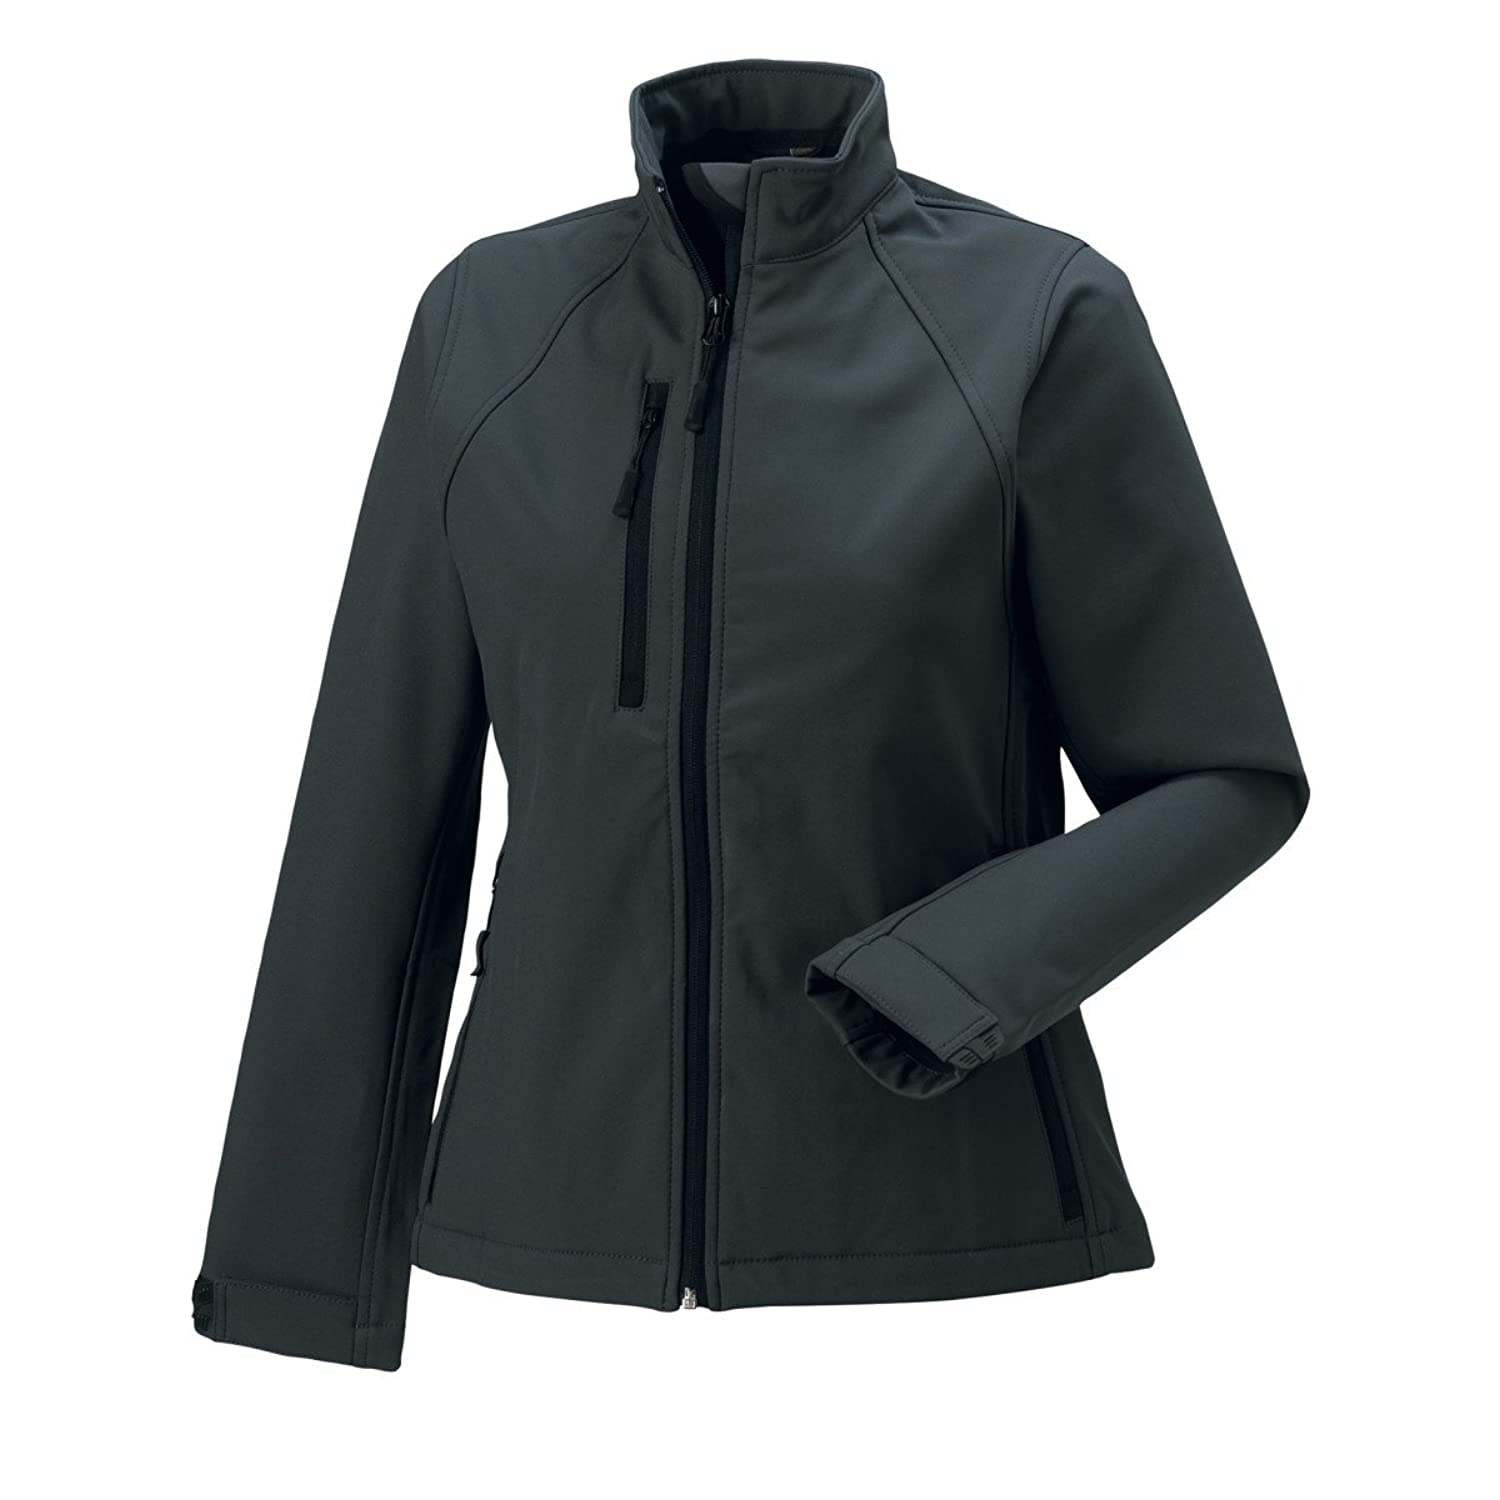 Jerzees Colours Soft Shell Jacke für Damen günstig